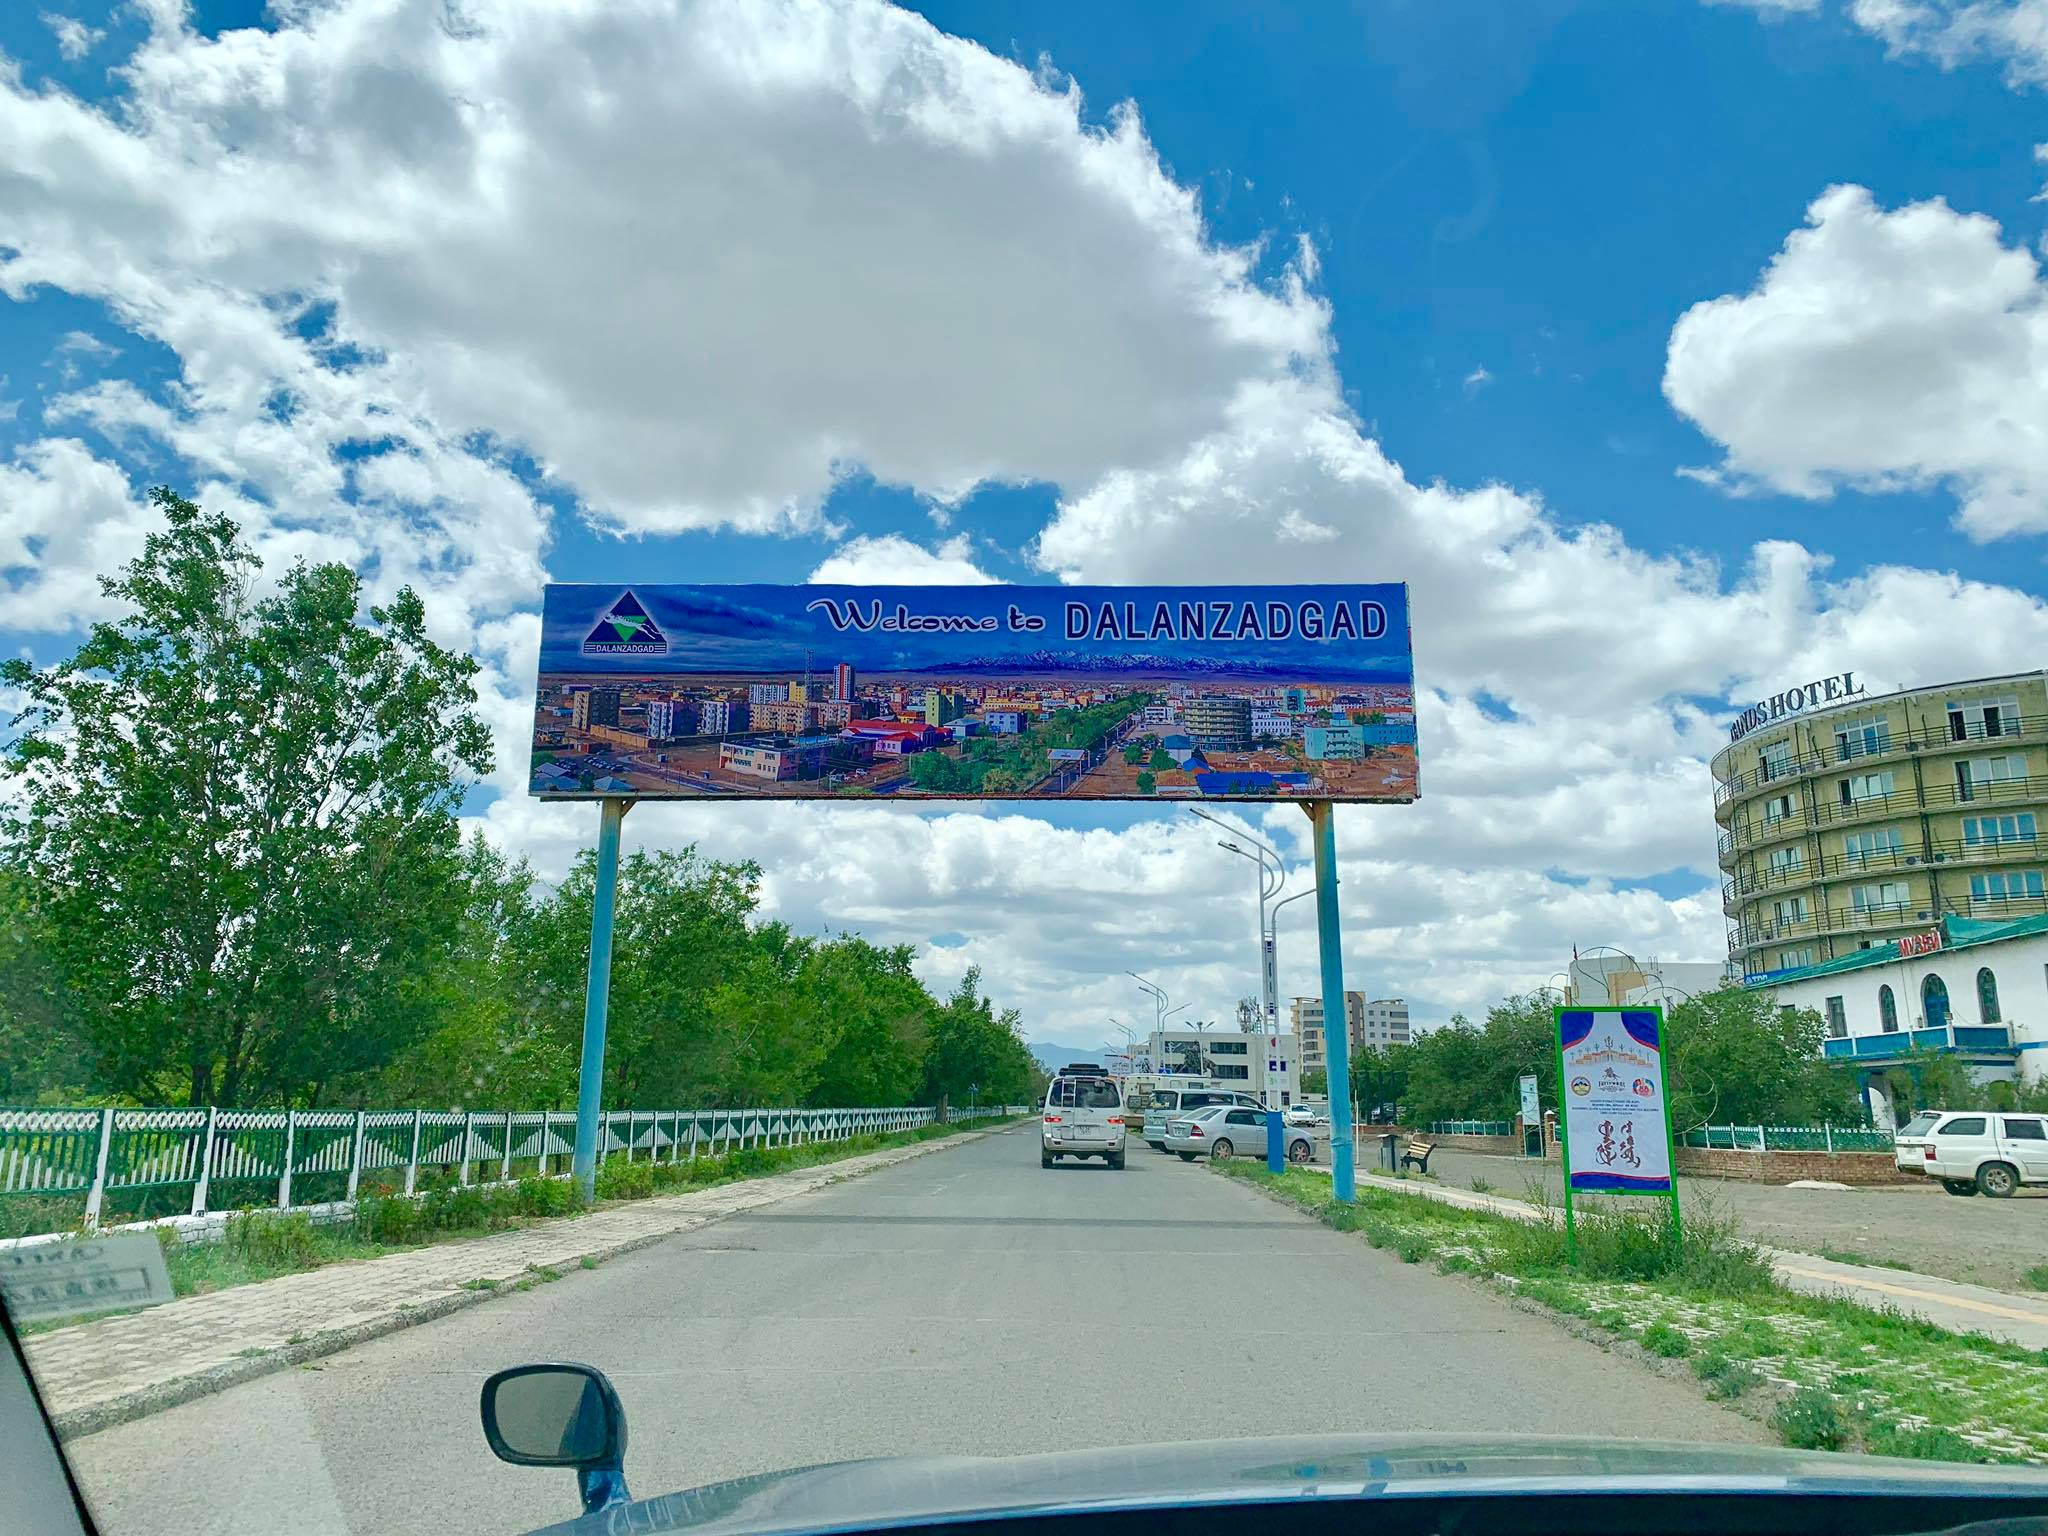 Kach Solo Travels in 2019 Gobi desert with Vast Steppe Mongolia!36.jpg